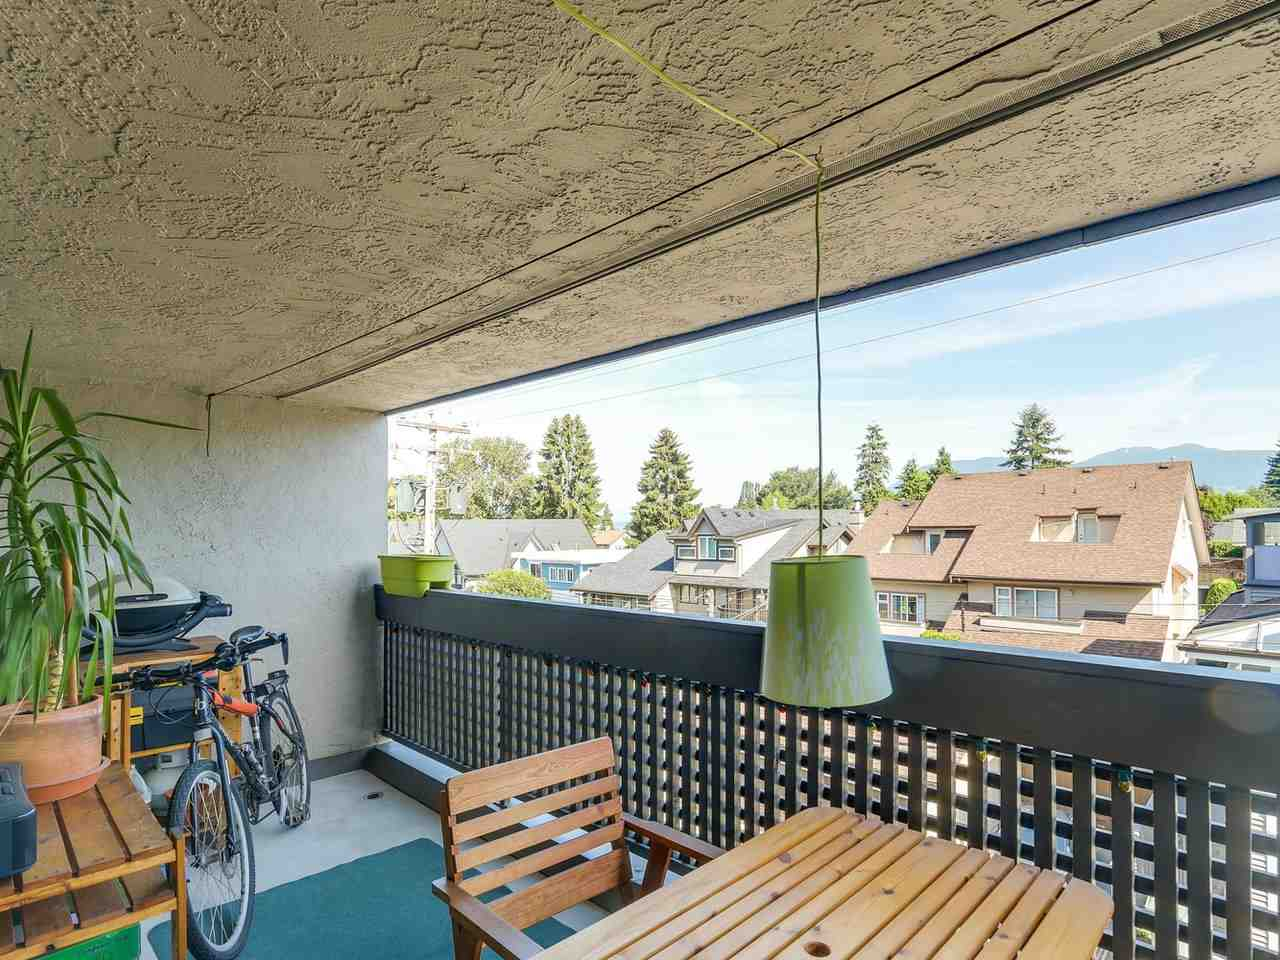 Photo 1: 309 1977 STEPHENS Street in Vancouver: Kitsilano Condo for sale (Vancouver West)  : MLS(r) # R2183869